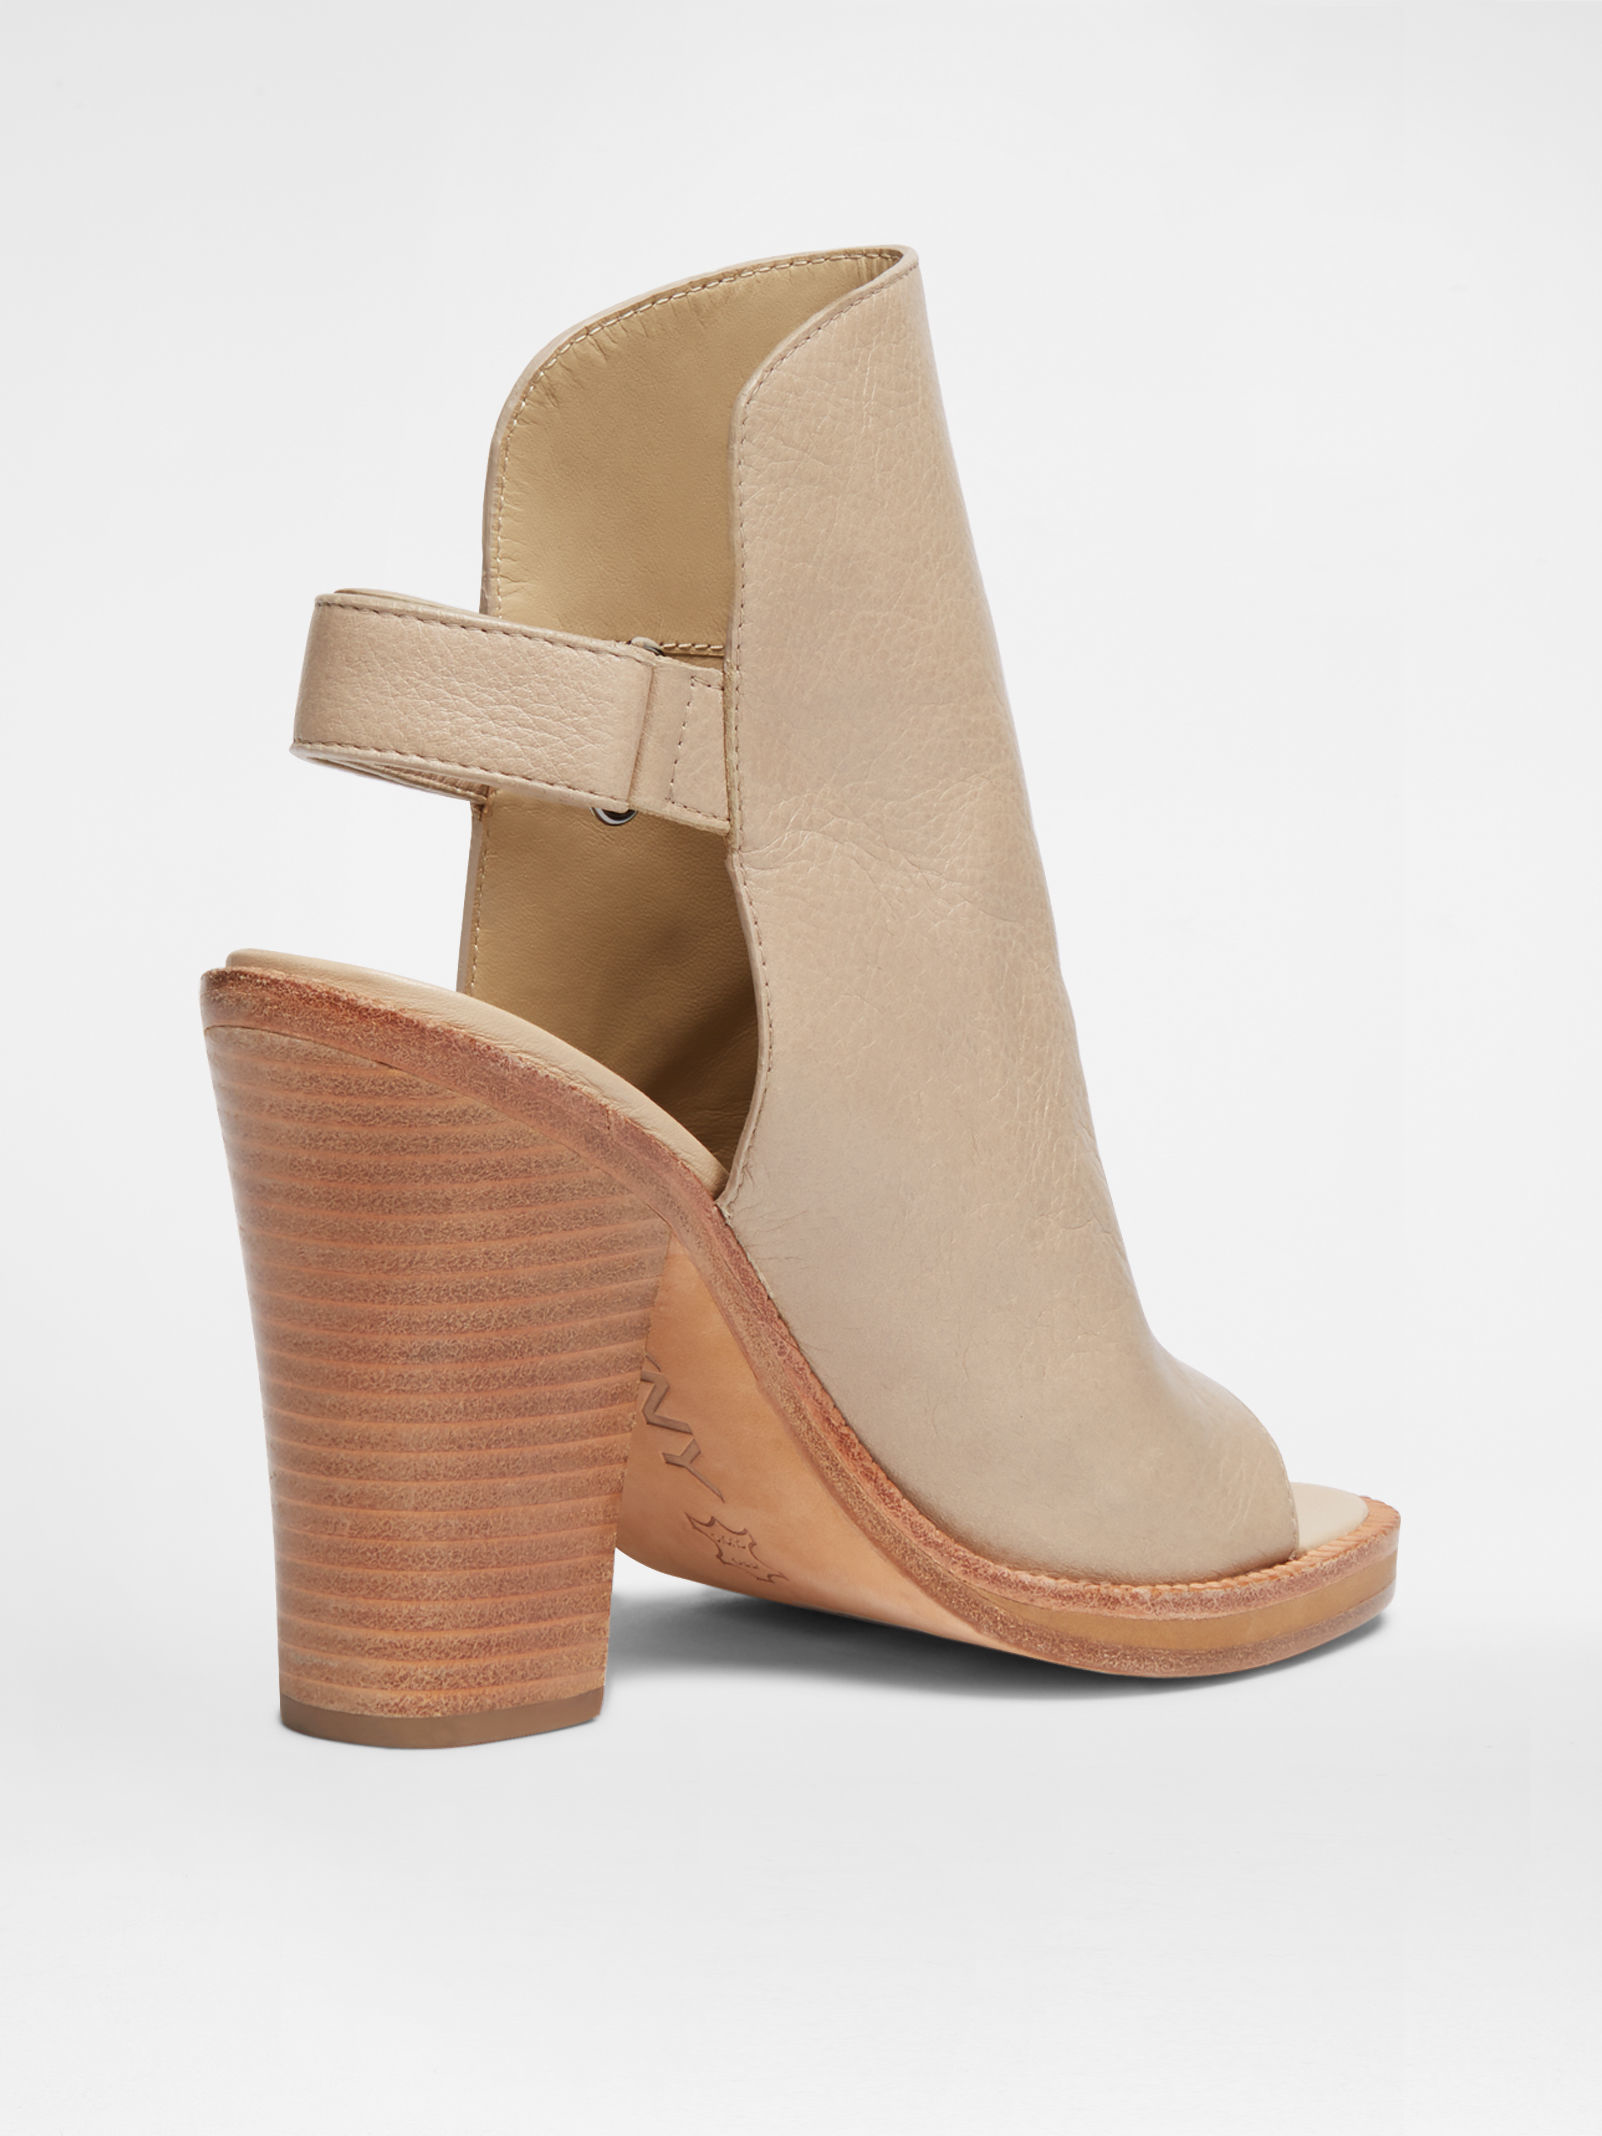 83ad5375dc52 Lyst - DKNY Whalen Welted Sandal in Natural